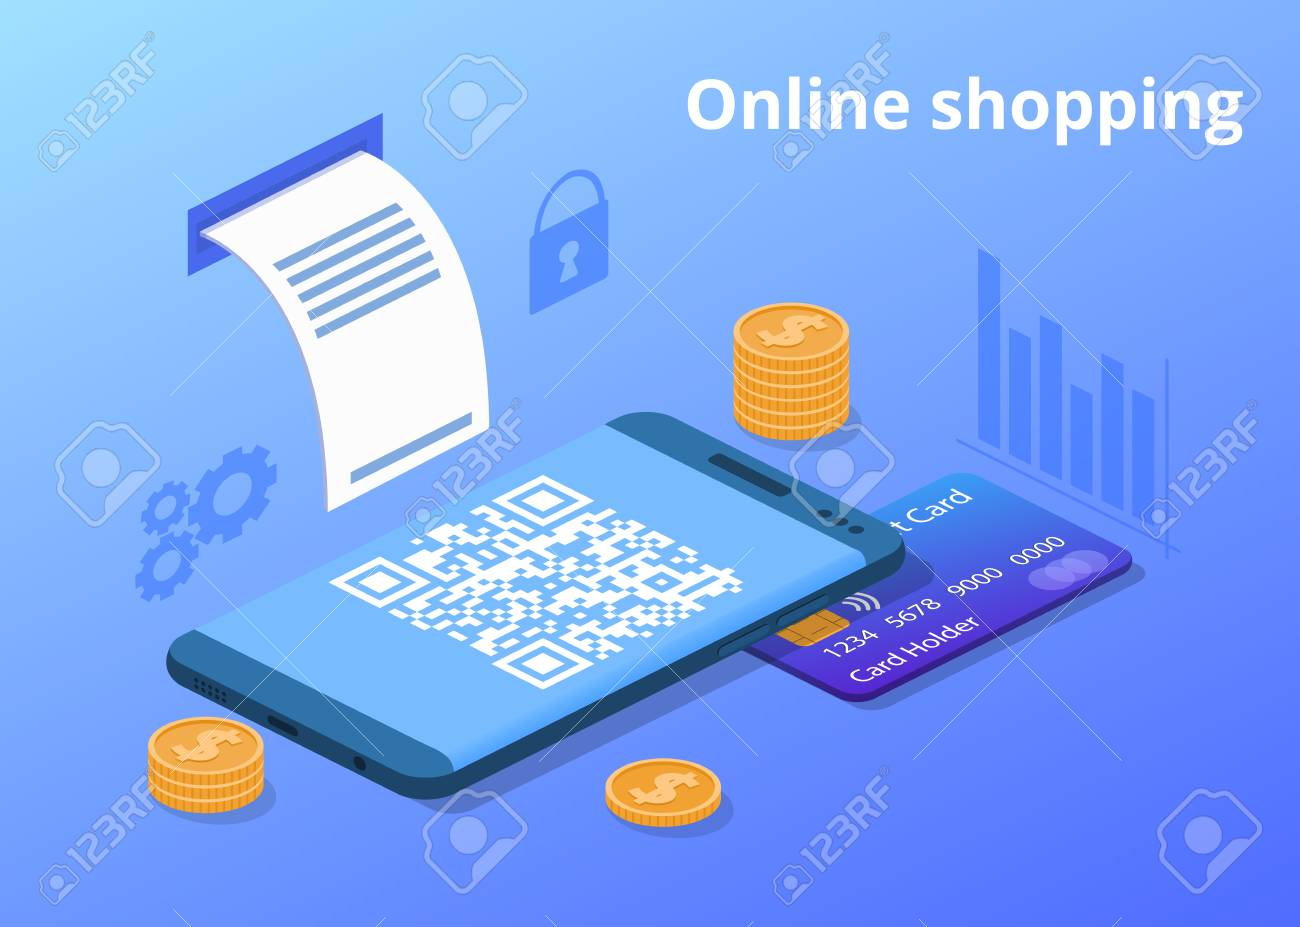 Online shopping vector illustration for digital retail and mobile trade. Credit card, money coins and shop QR code of web store purchase receipt in smartphone with secure payment technology - 106133001